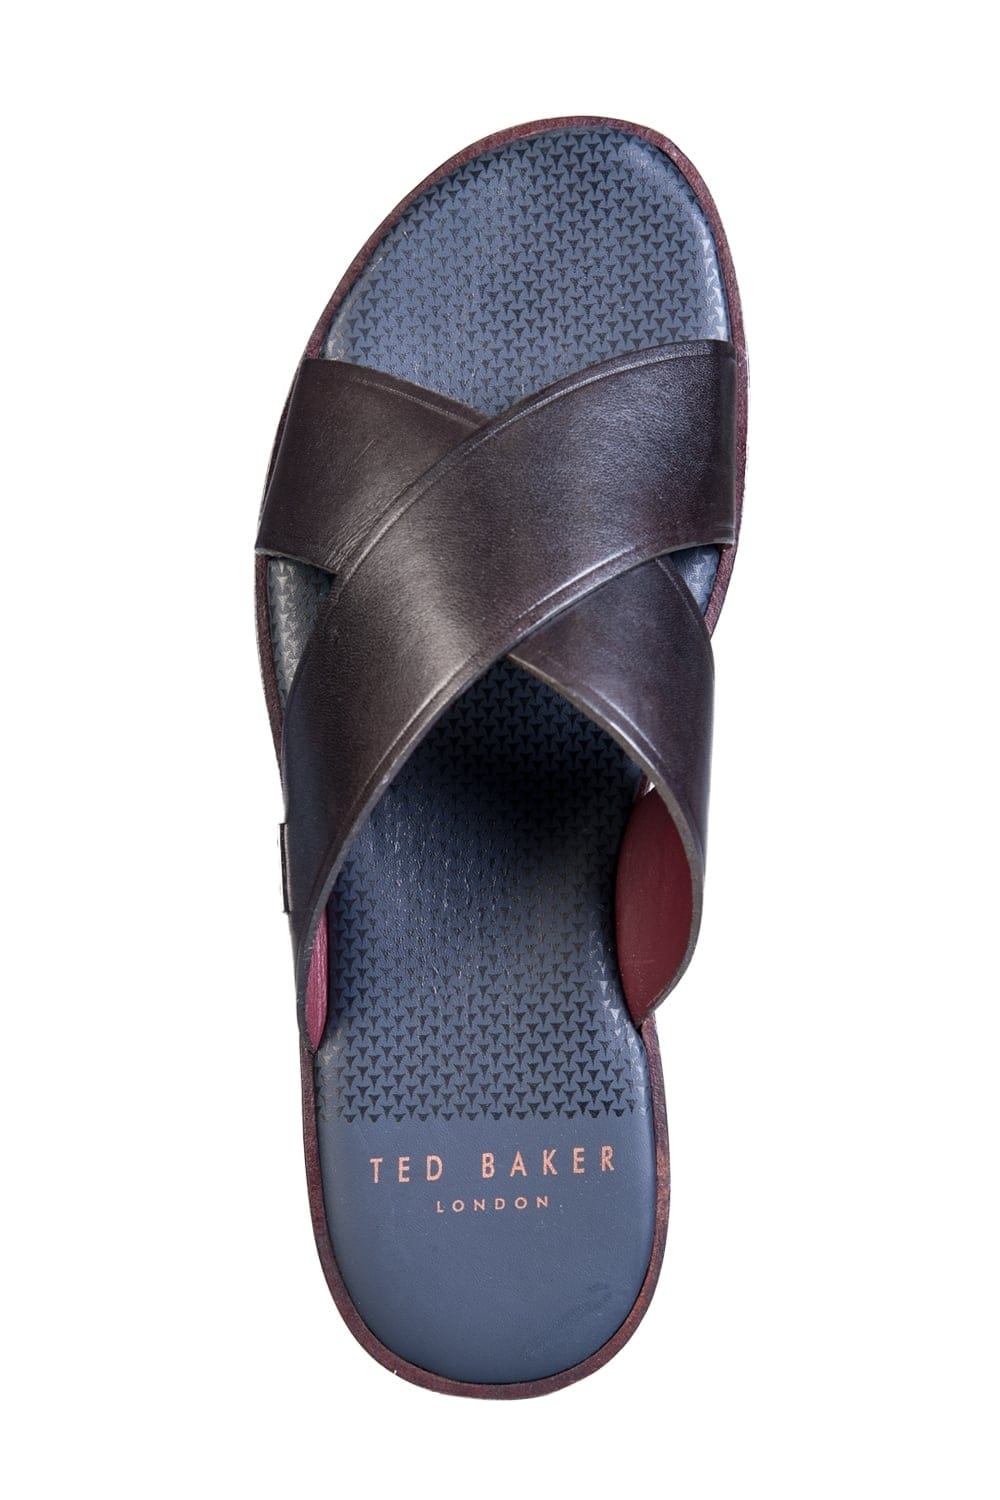 9f360f221 Ted Baker Leather Slip On Flip Flops PUNXEL 16001 - Footwear from ...